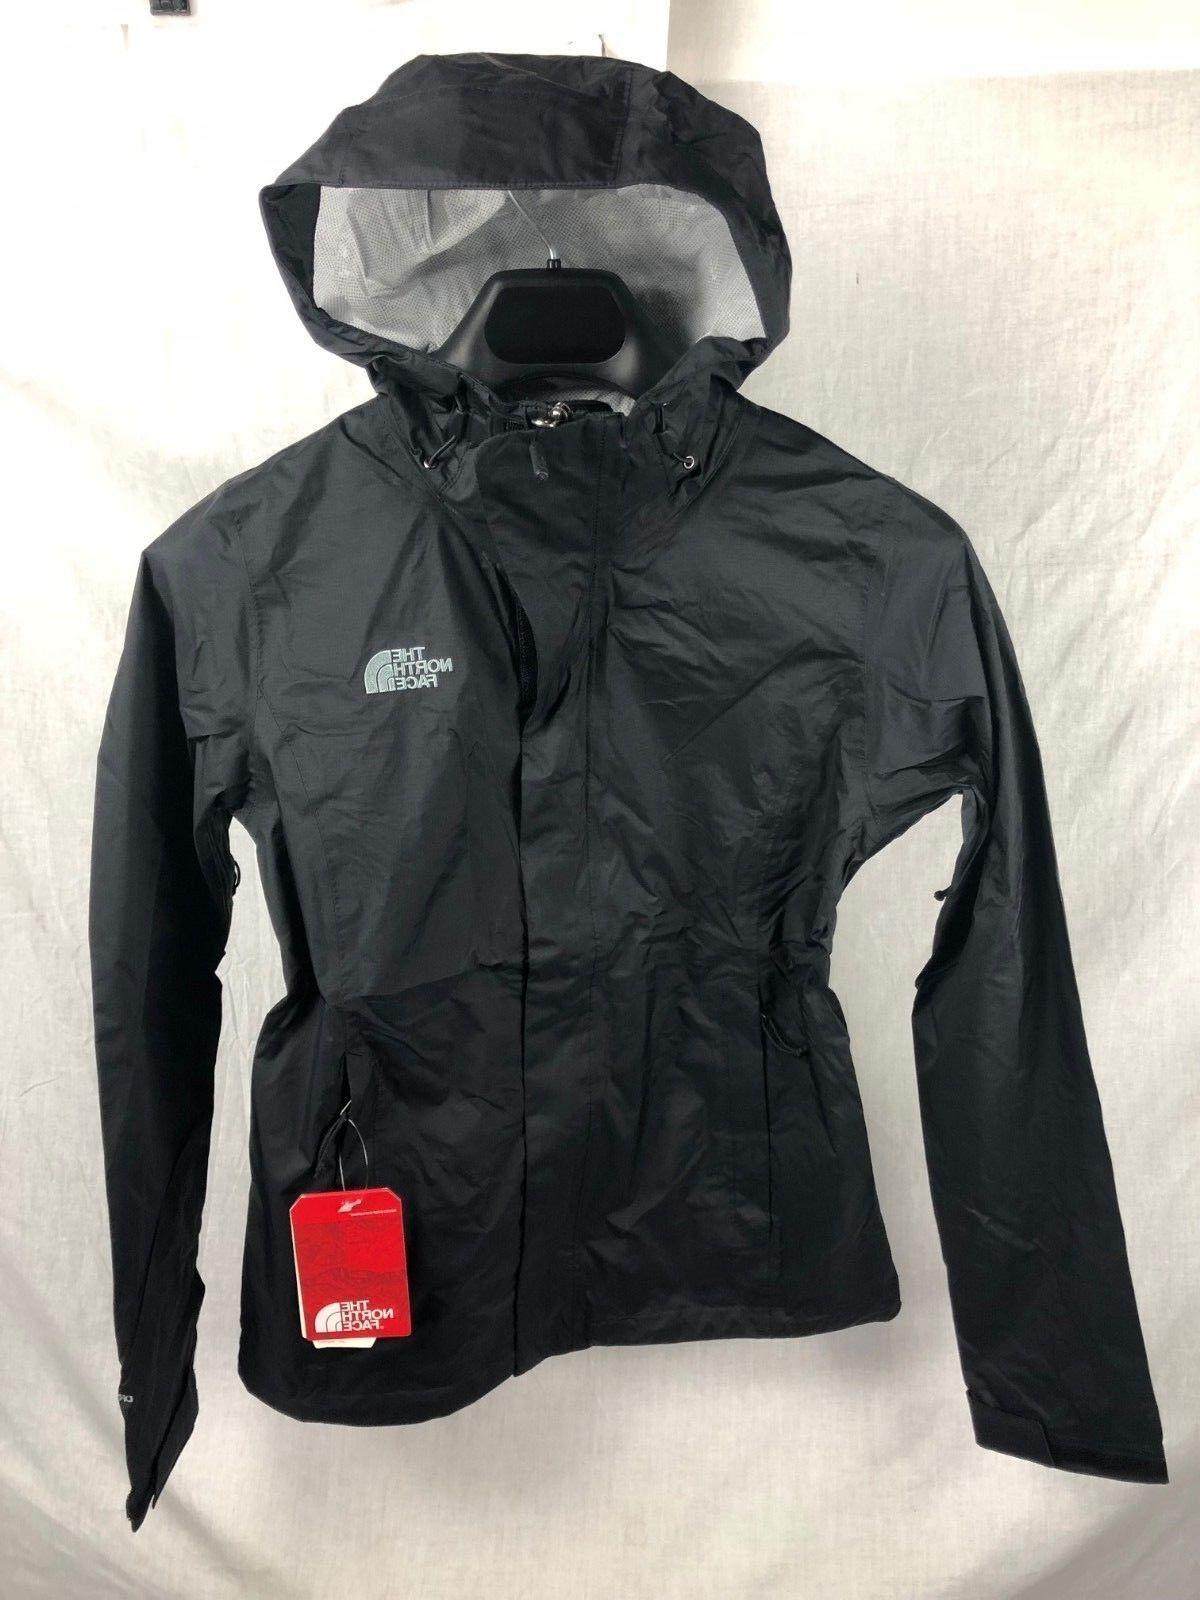 NEW THE NORTH FACE VENTURE JACKET BLACK WOMENS SHELL RAIN FR